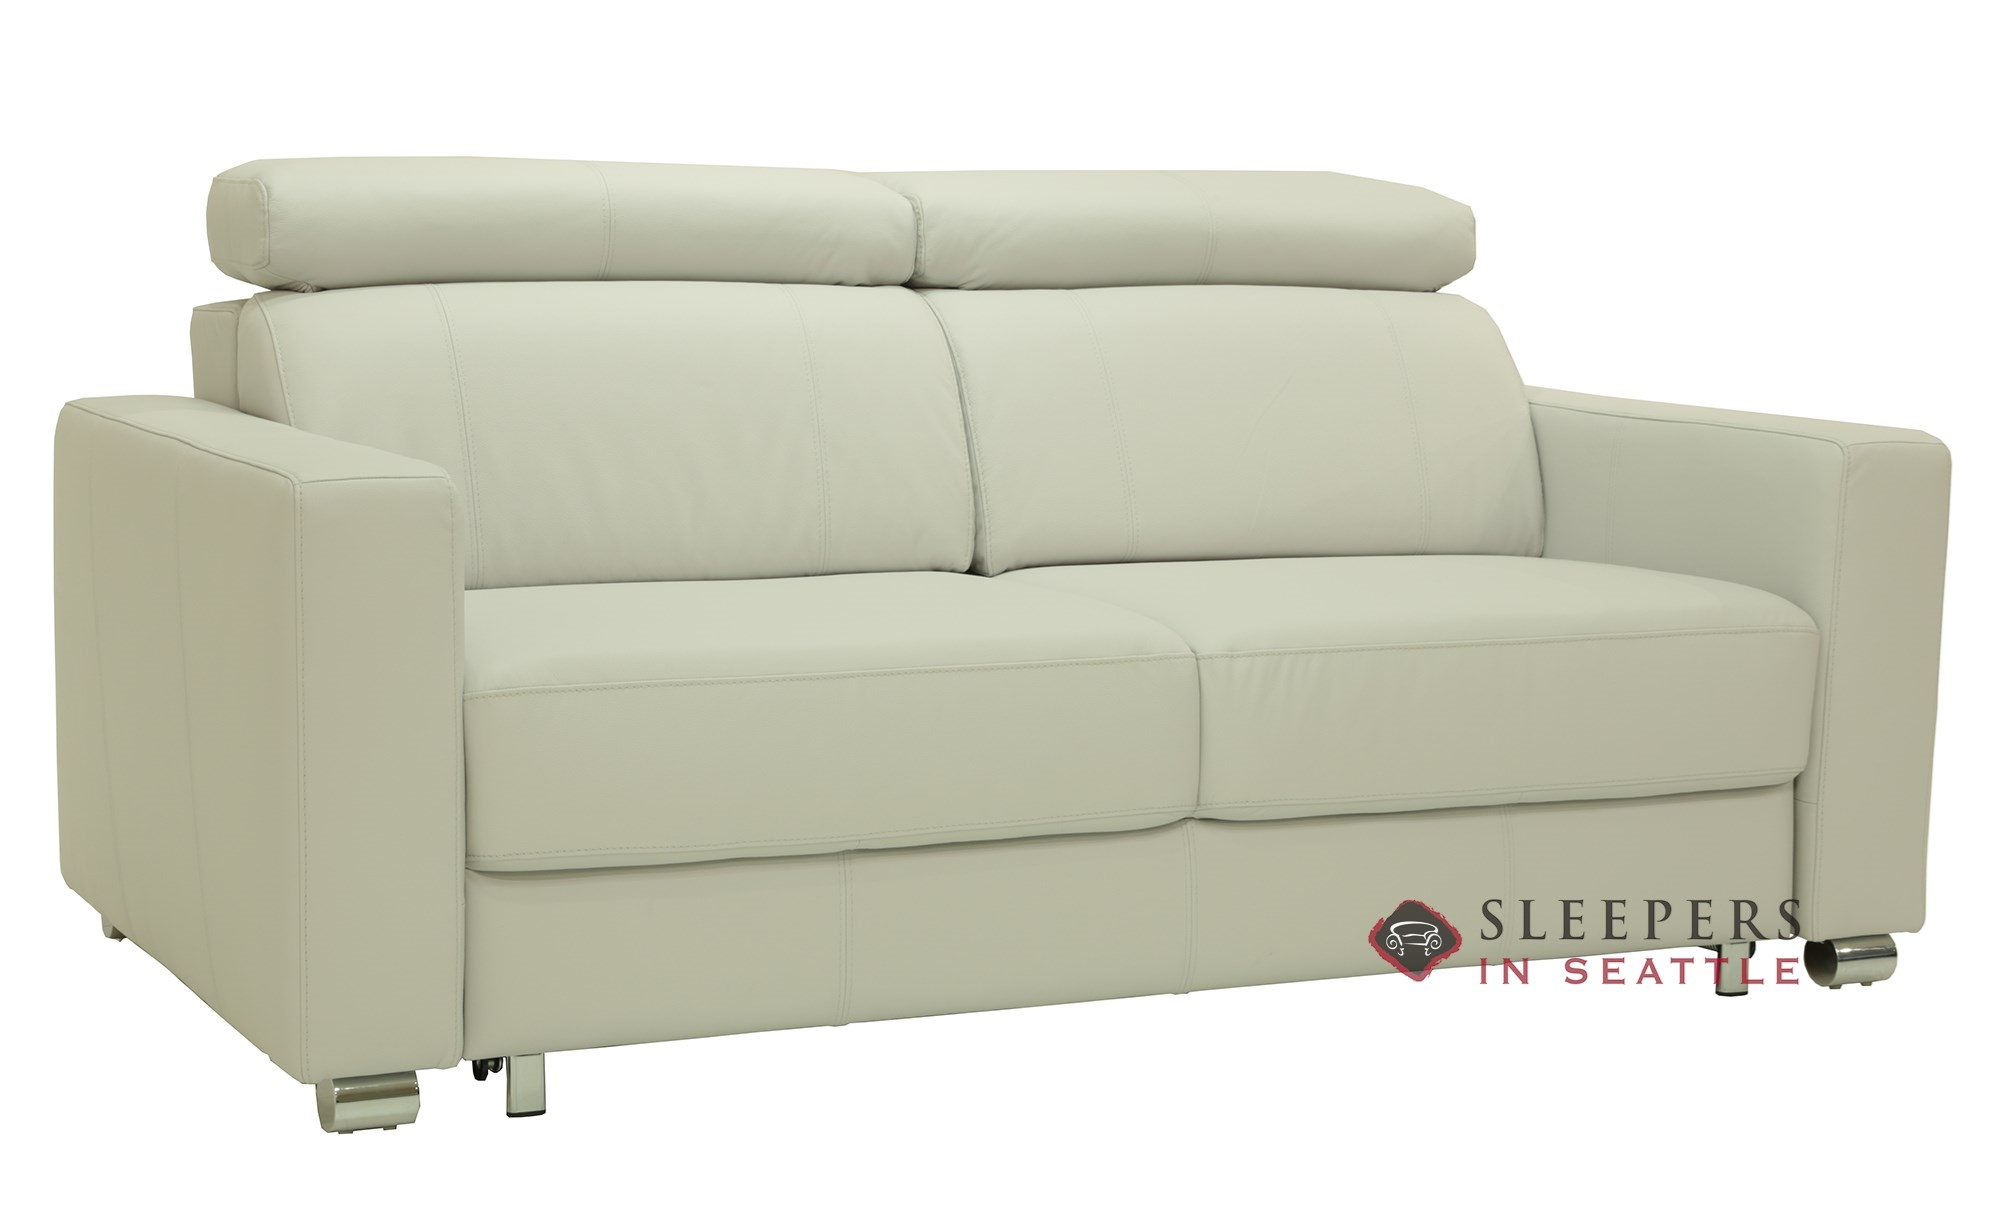 Luonto West Queen Leather Sleeper Sofa